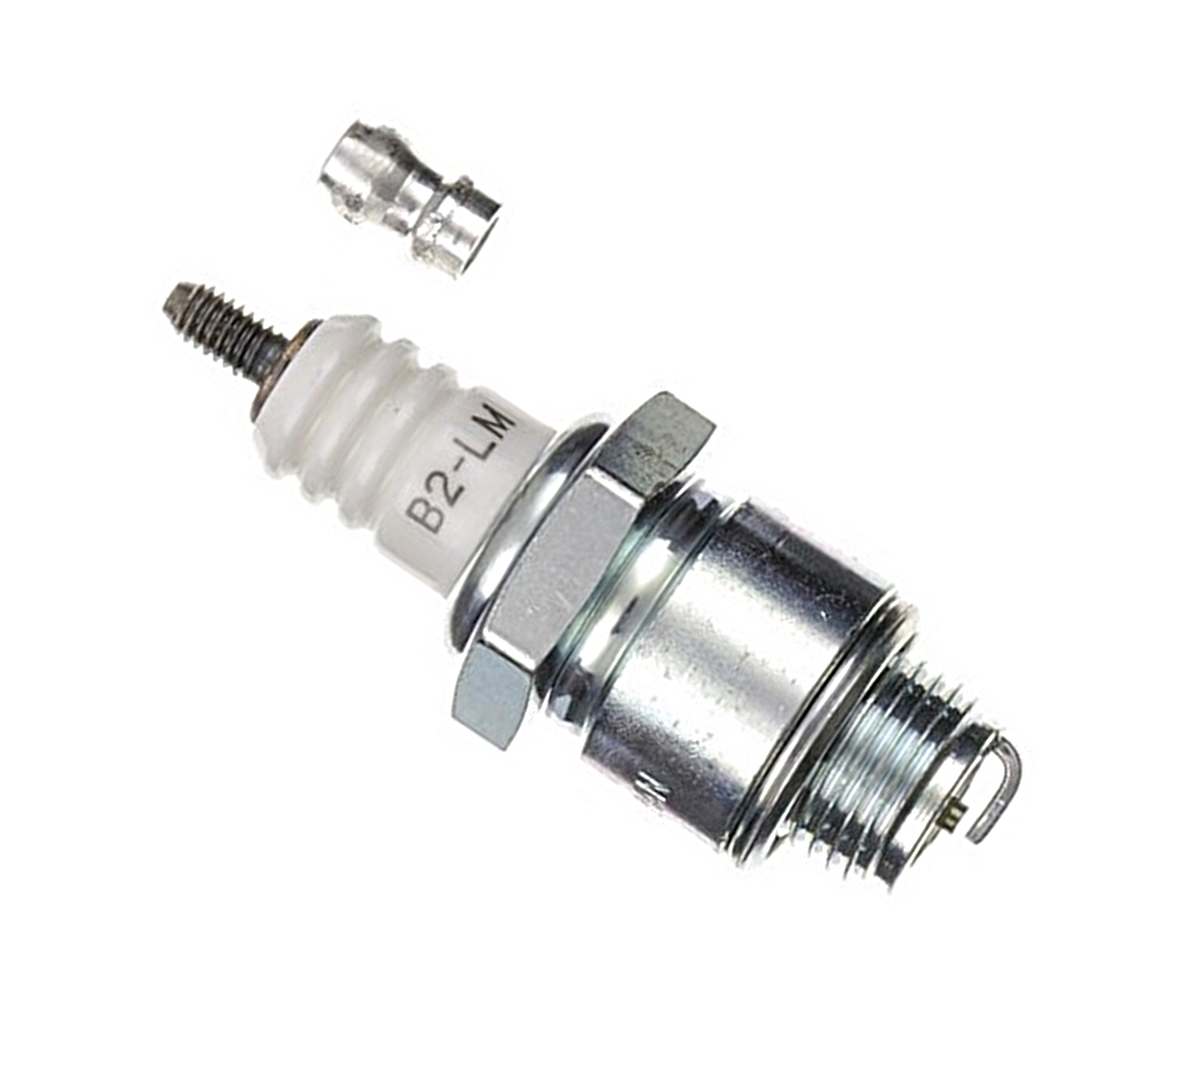 Champion Self Propelled Lawn Mower Parts And Spares Diagram List For Honda Walkbehindlawnmowerparts Model Ngk B2lm Spark Plug Equivalent To J19lm Briggs Stratton 492167s 796112